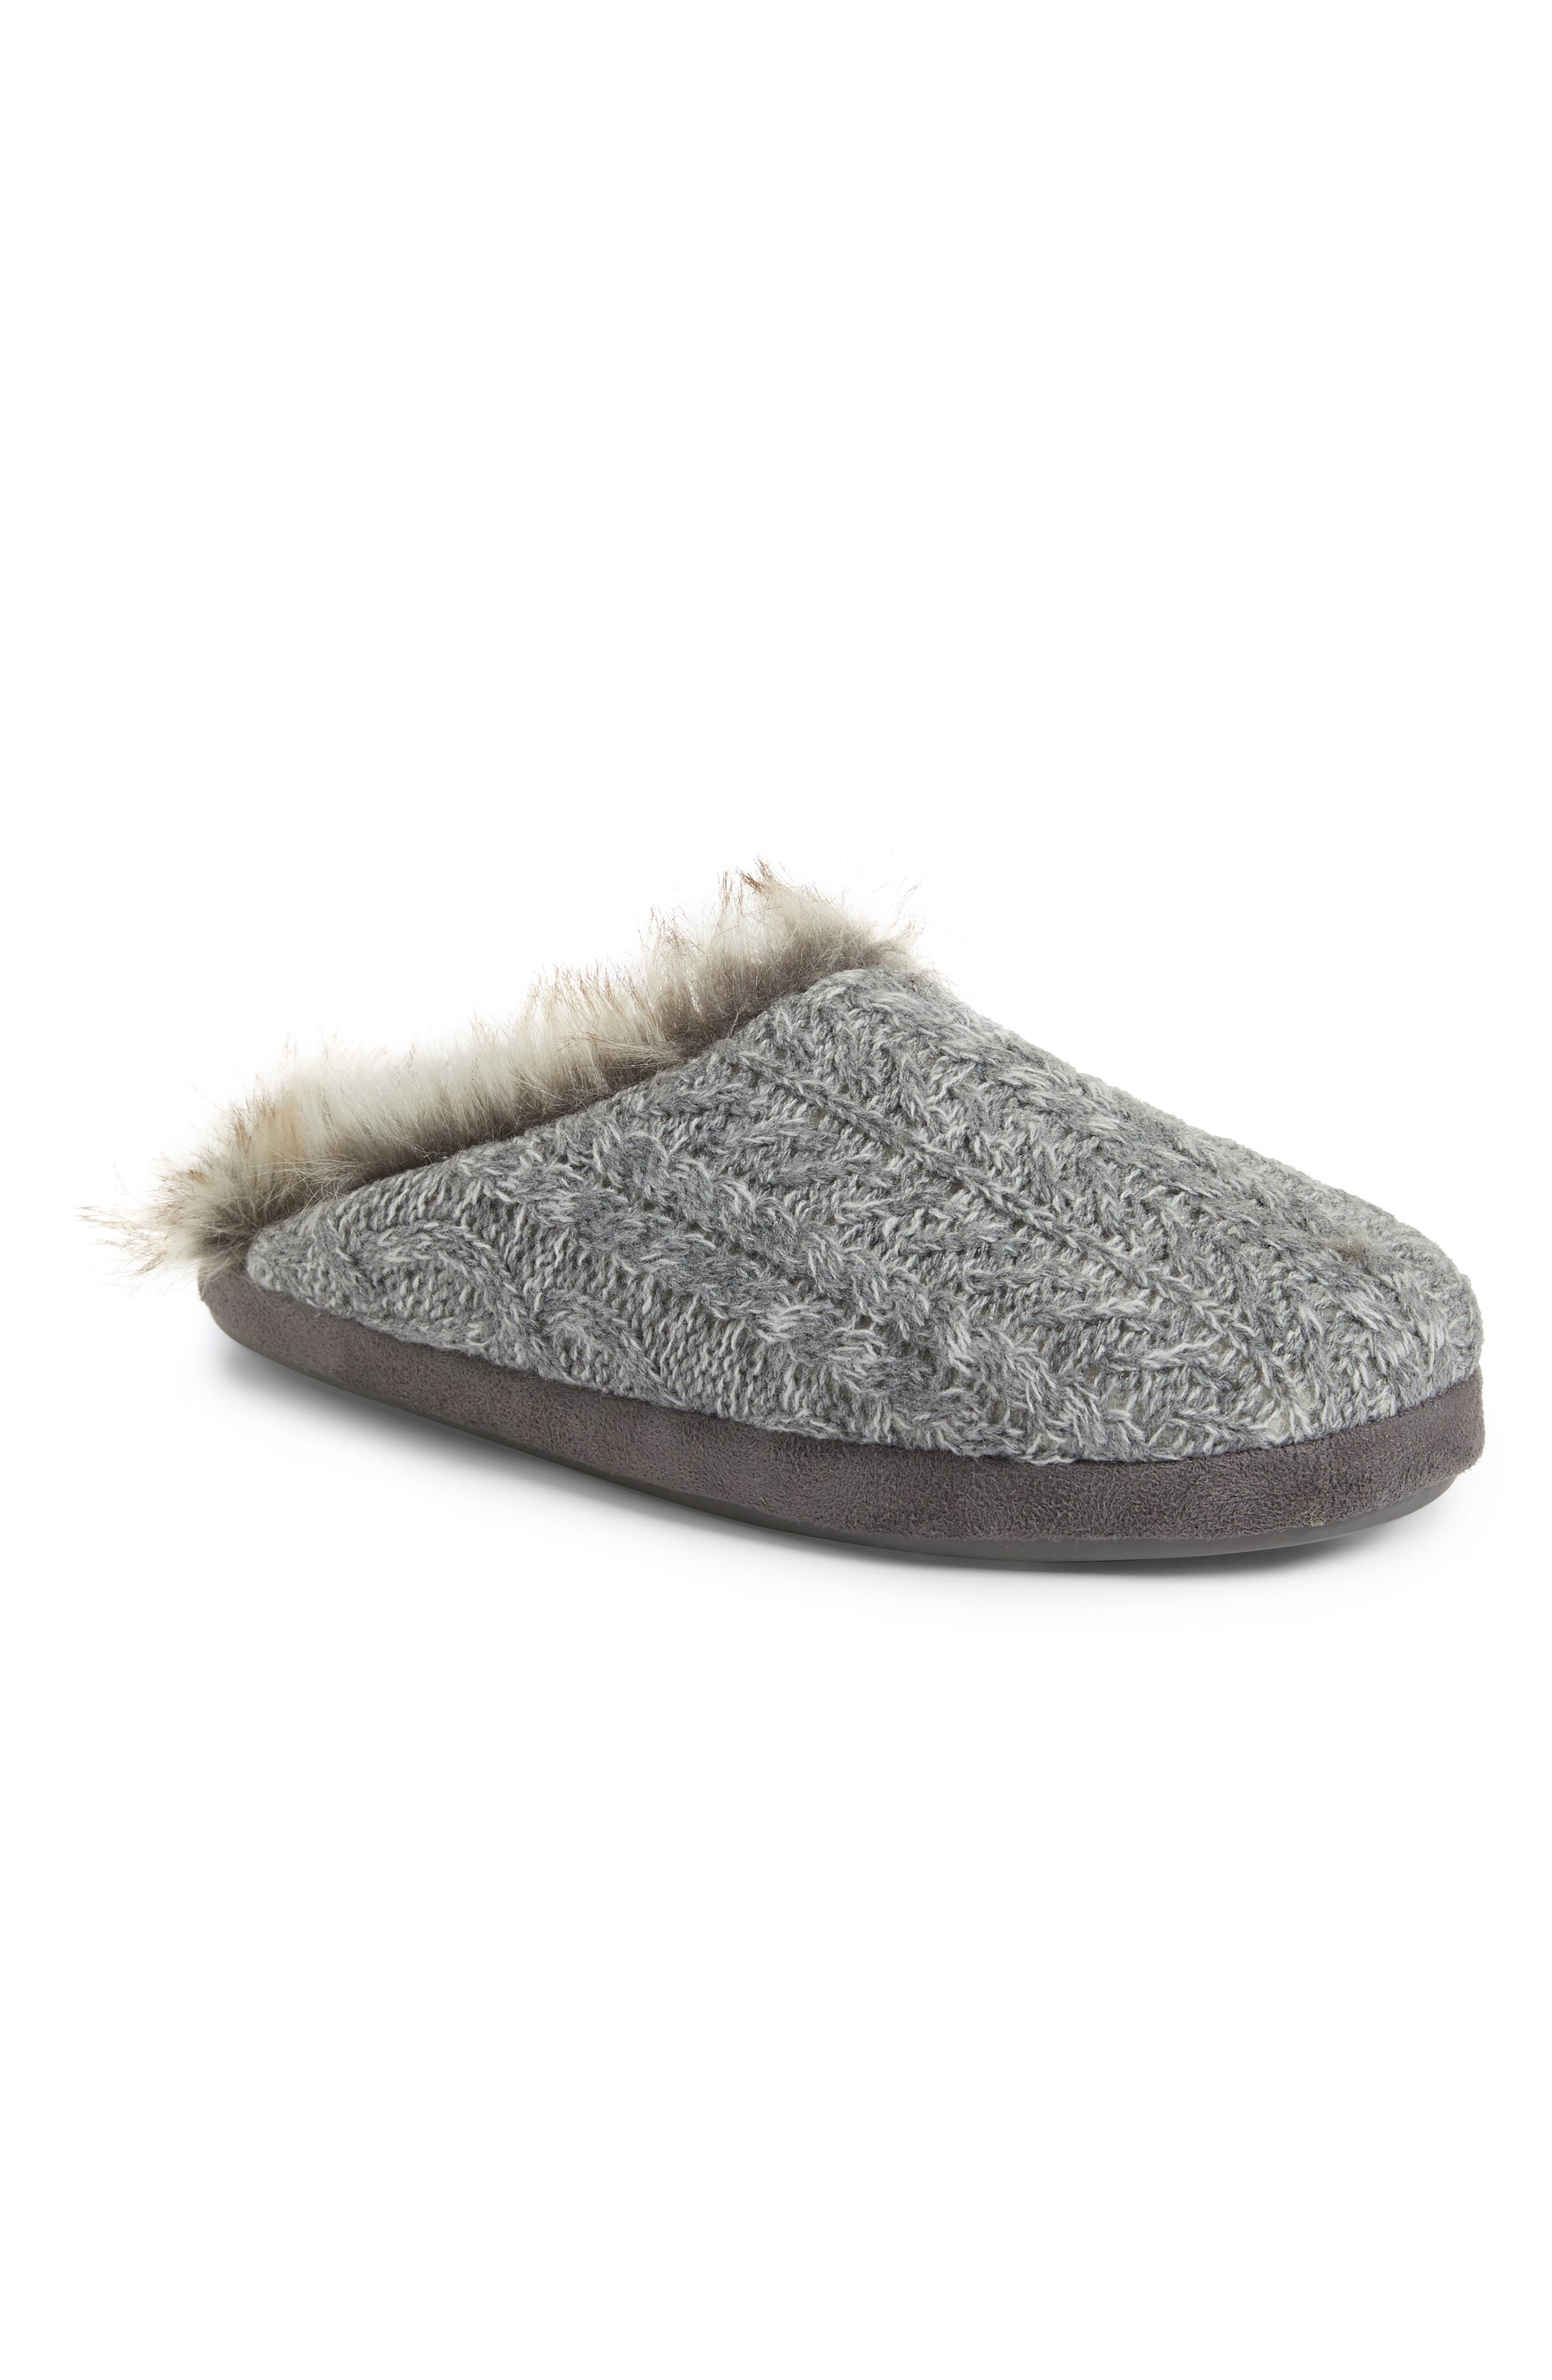 PJ SALVAGE, Faux Fur Trim Cable Knit Slipper, Main thumbnail 1, color, HEATHER GREY